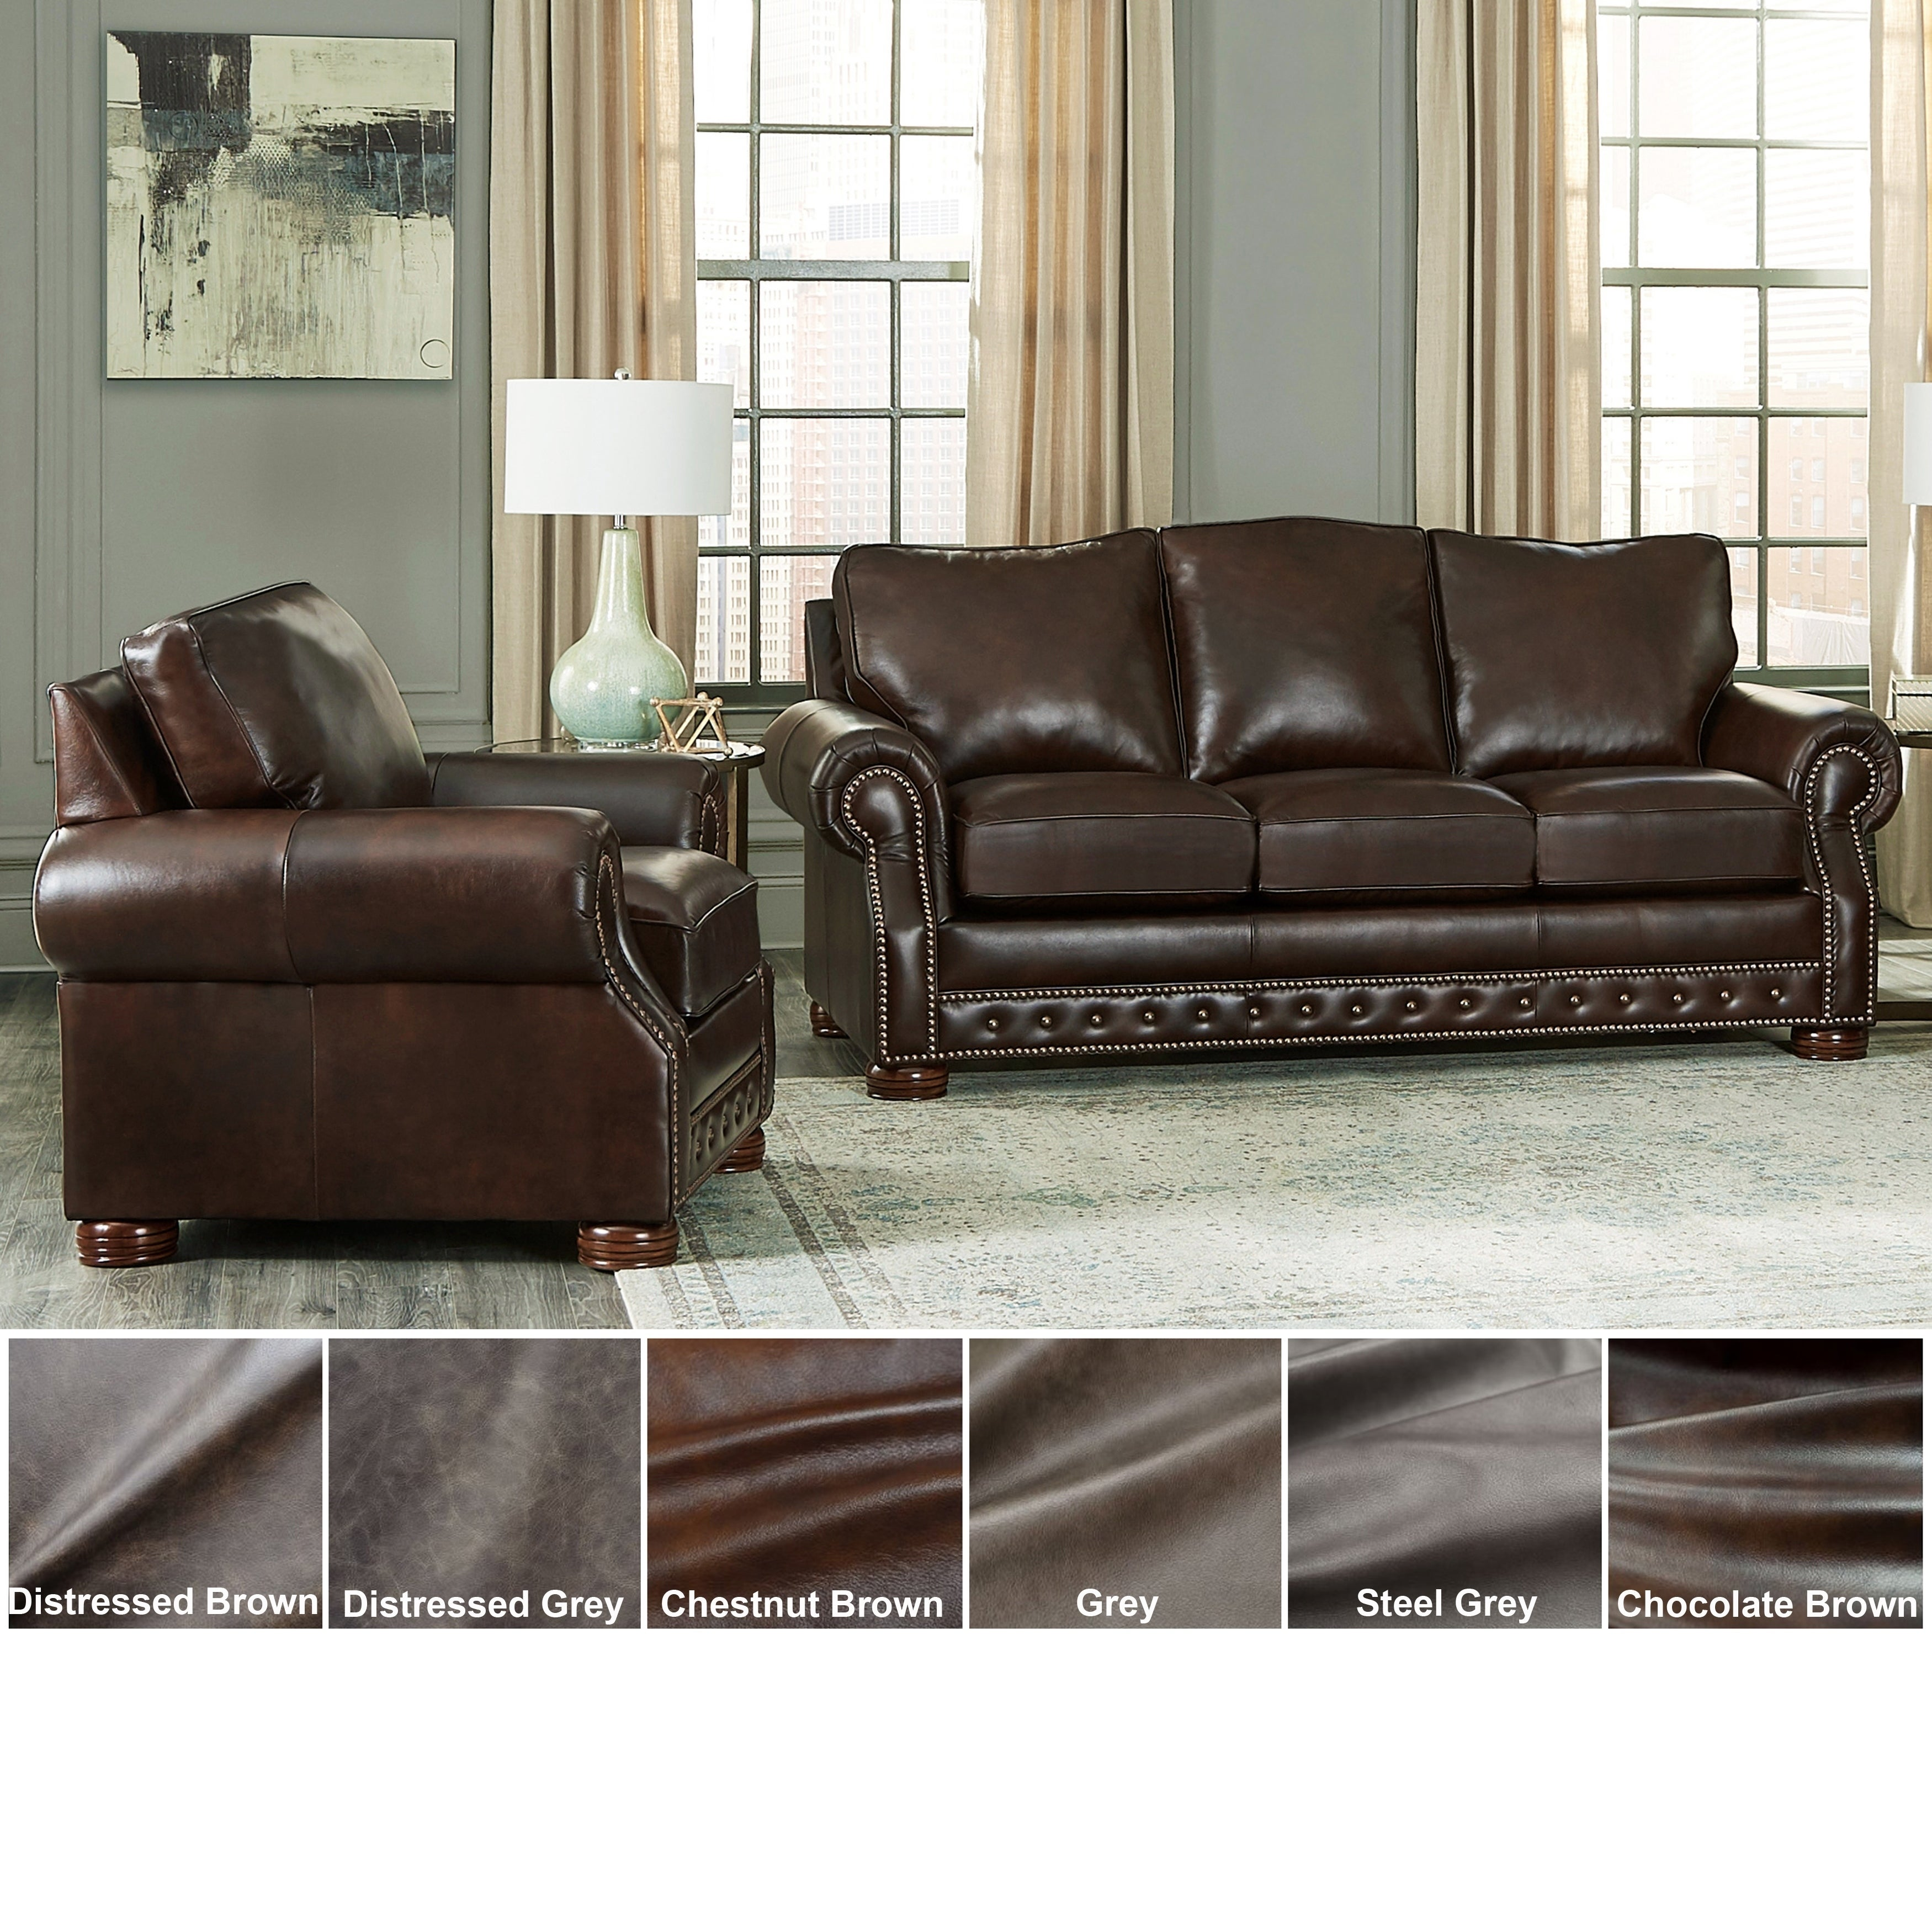 Made in USA Porto Top Grain Leather Sofa and Chair